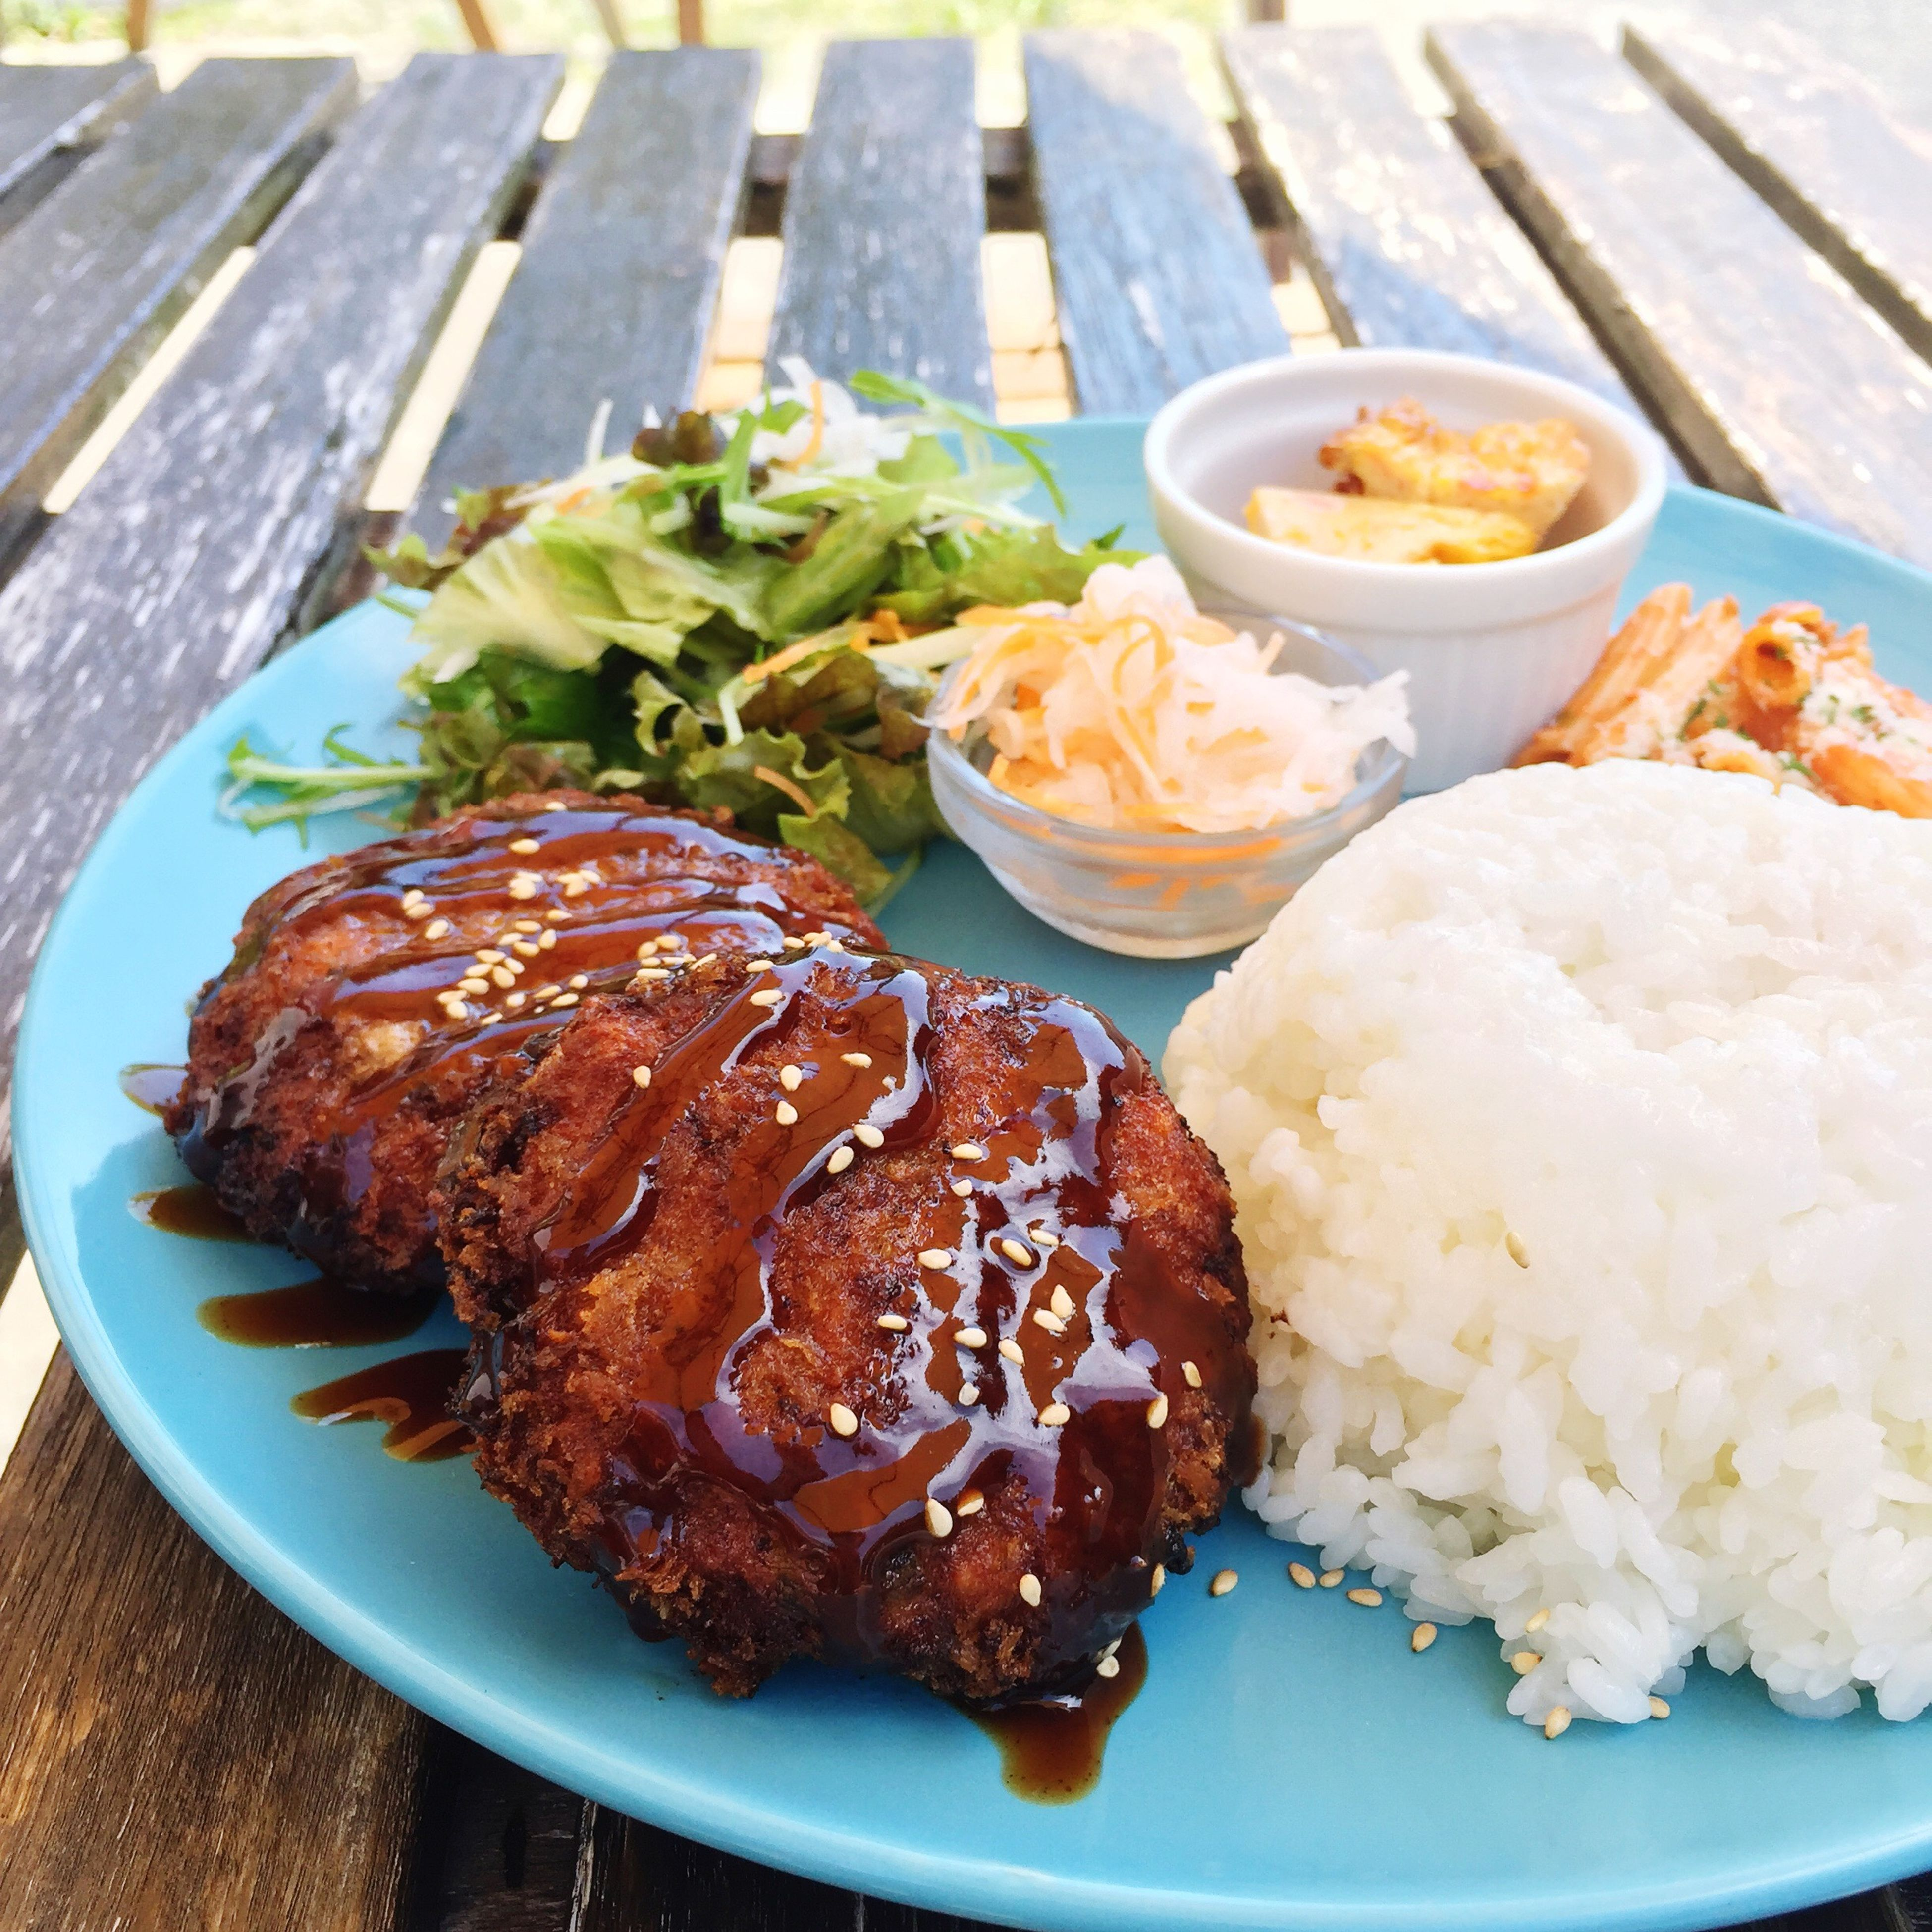 food, food and drink, plate, table, serving size, ready-to-eat, meat, freshness, rice - food staple, no people, healthy eating, close-up, indoors, day